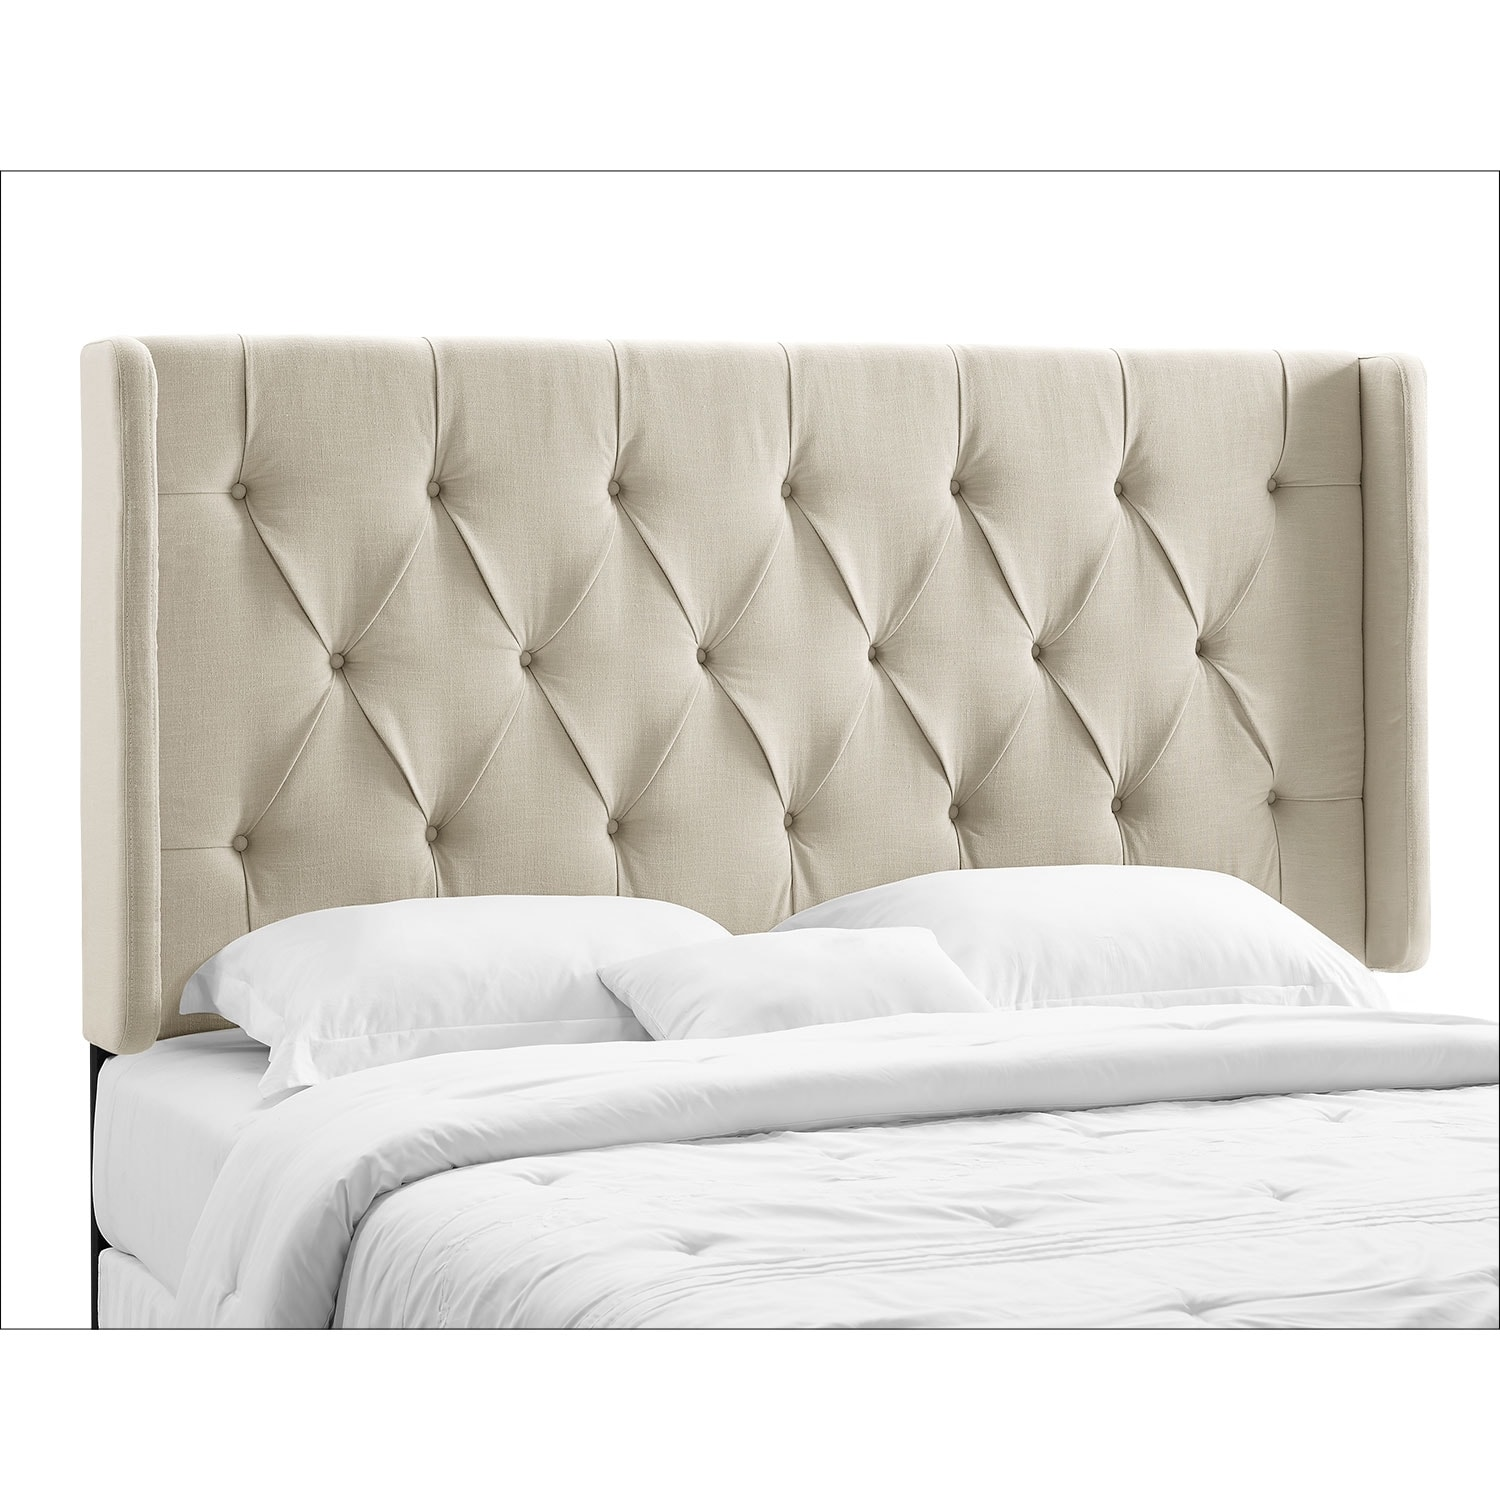 Bedroom Furniture - Winston Cream King/California King Headboard